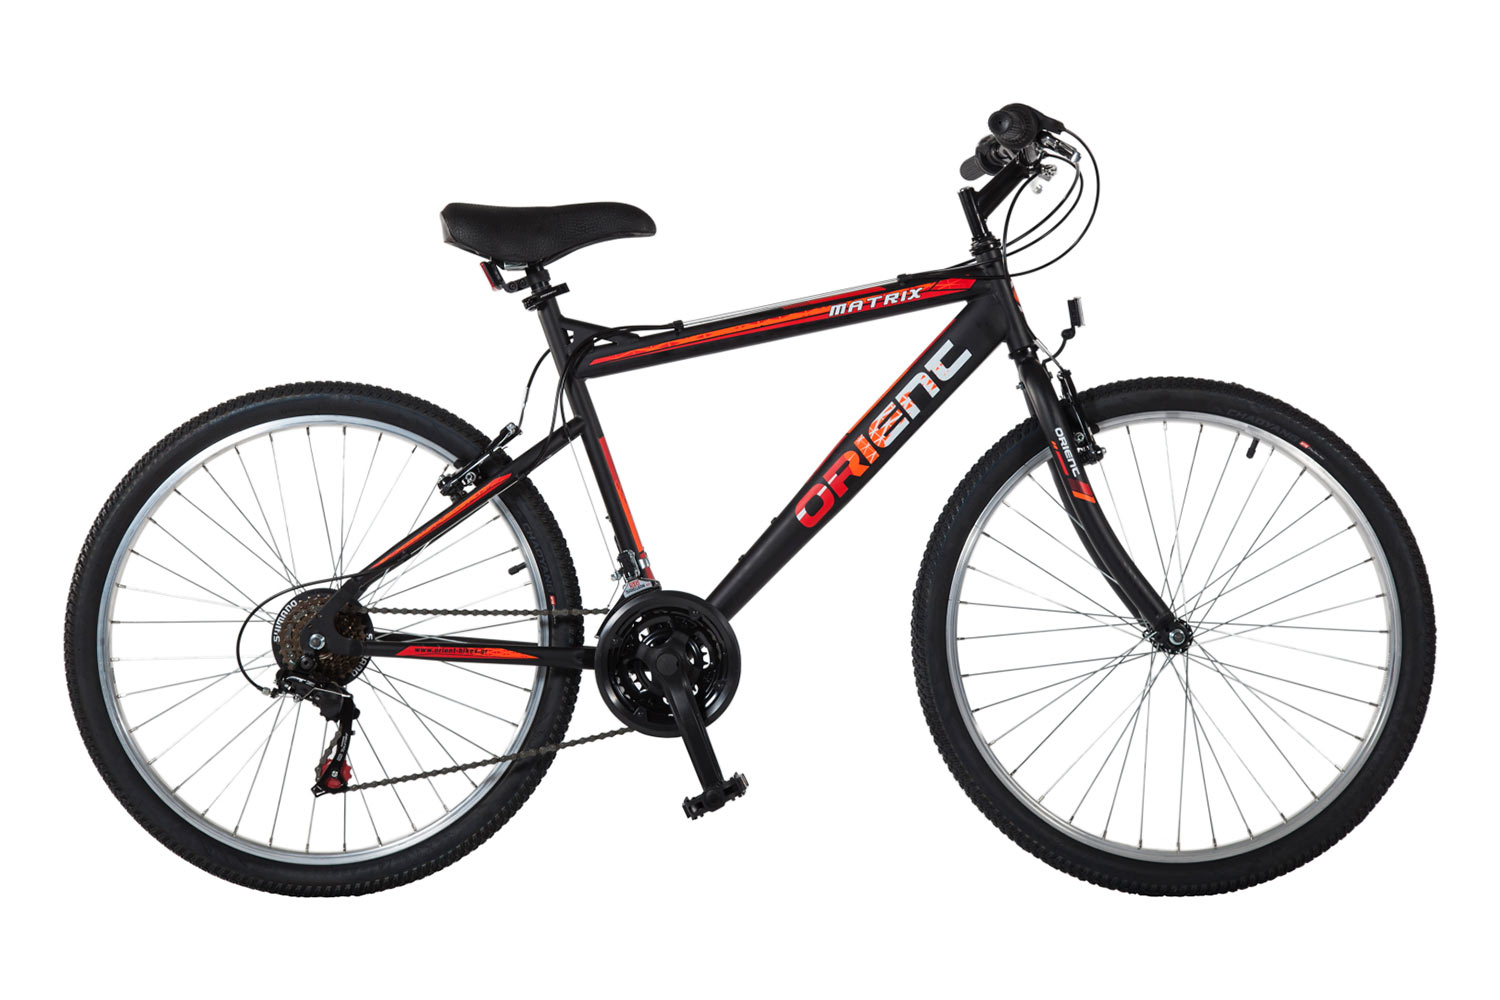 MATRIX 26″ man 21sp. bike image